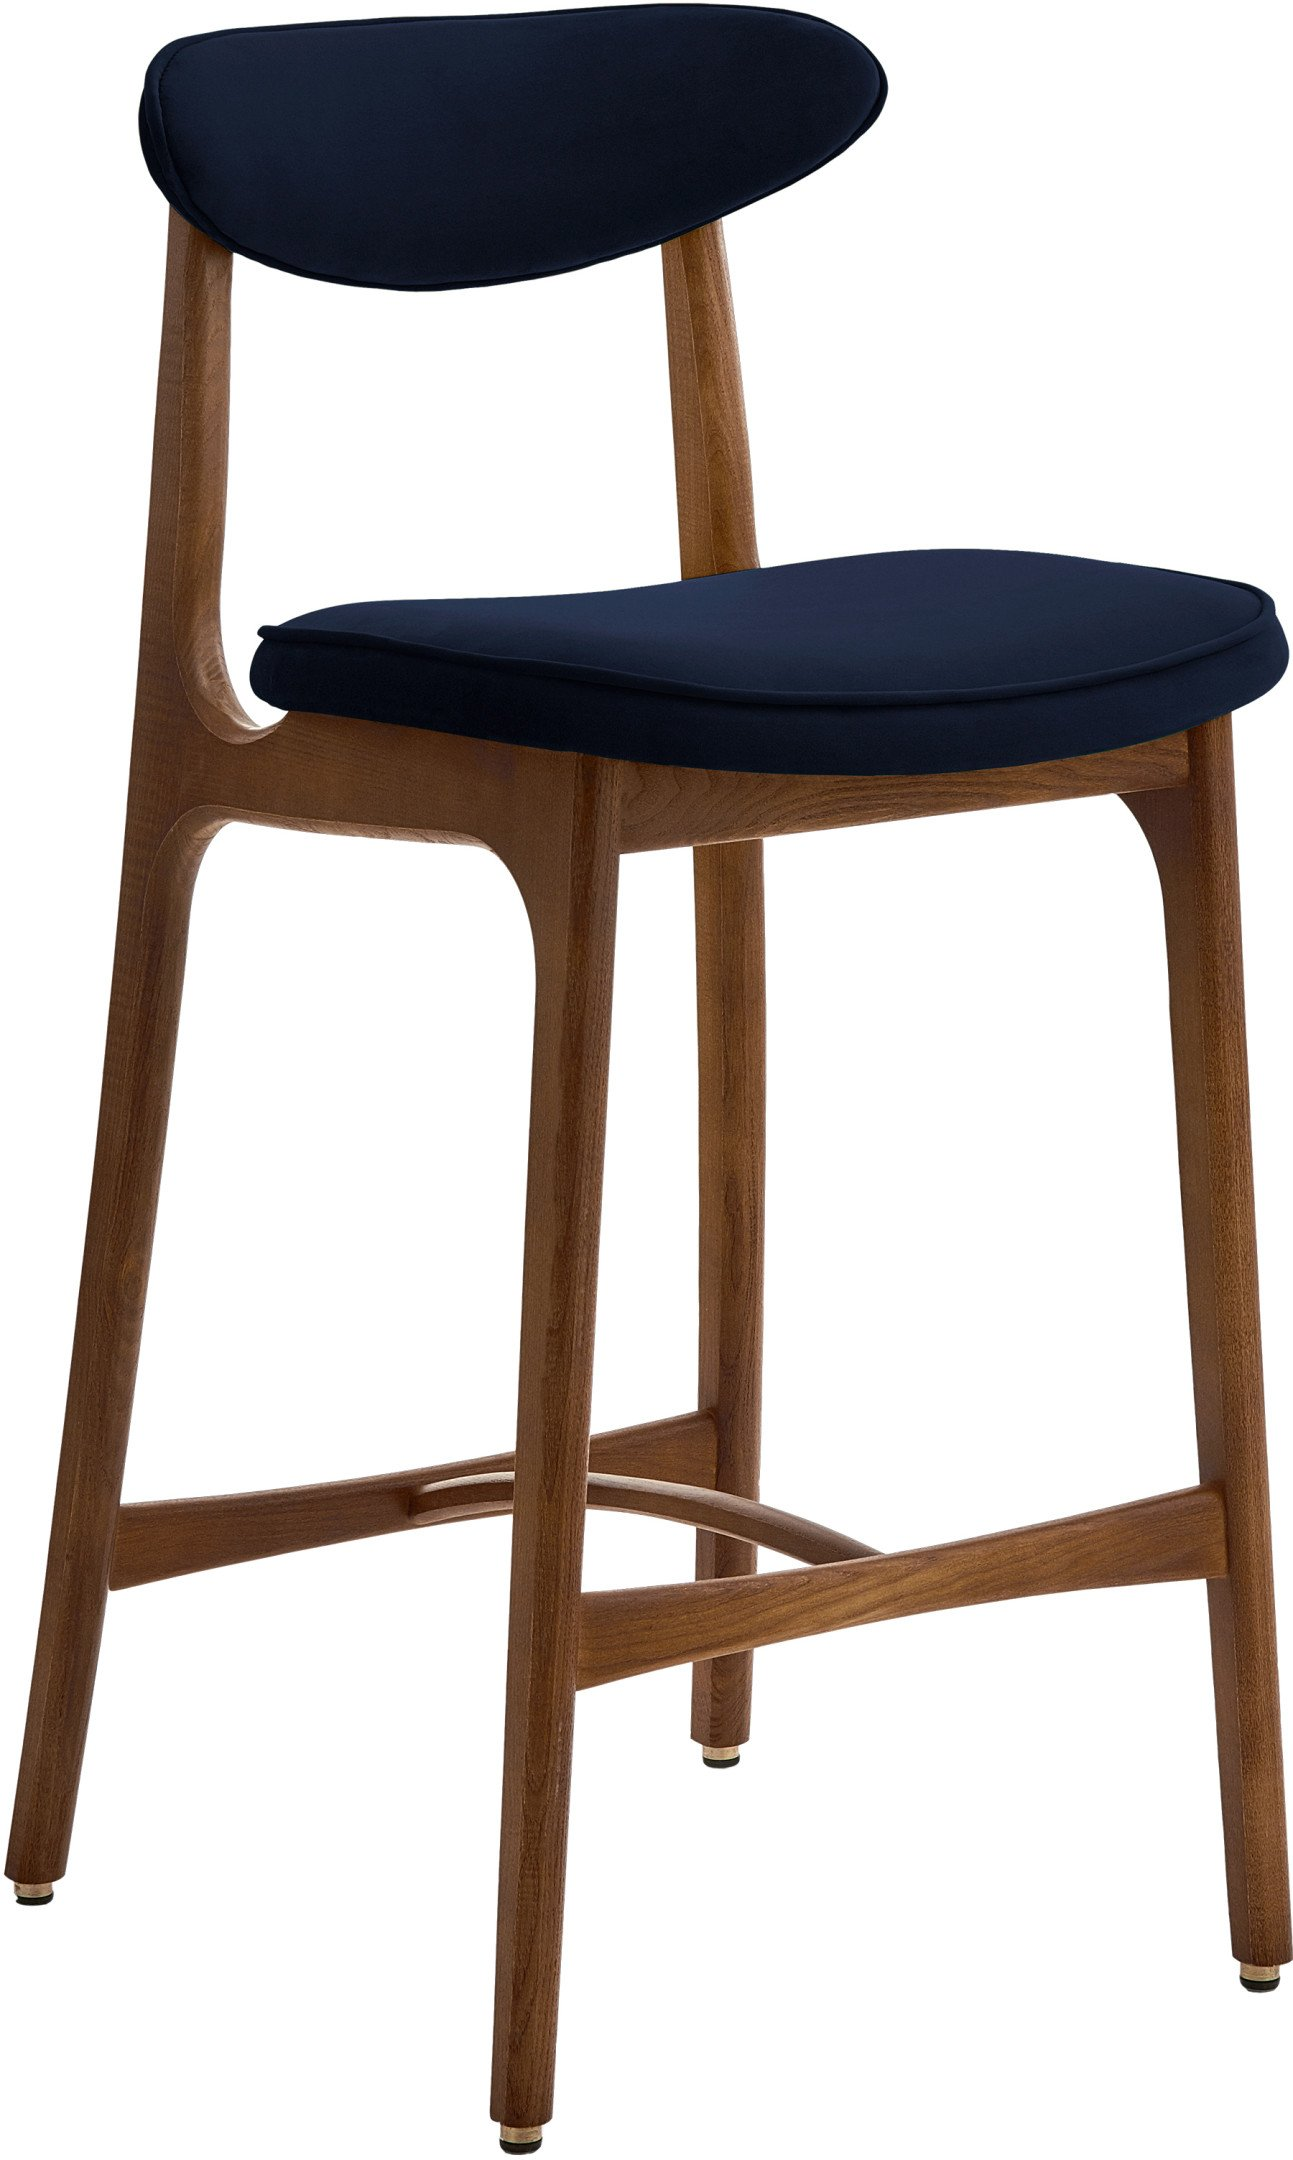 200-190 Bar Stool 65 Chair, Velvet Indigo, 366 Concept